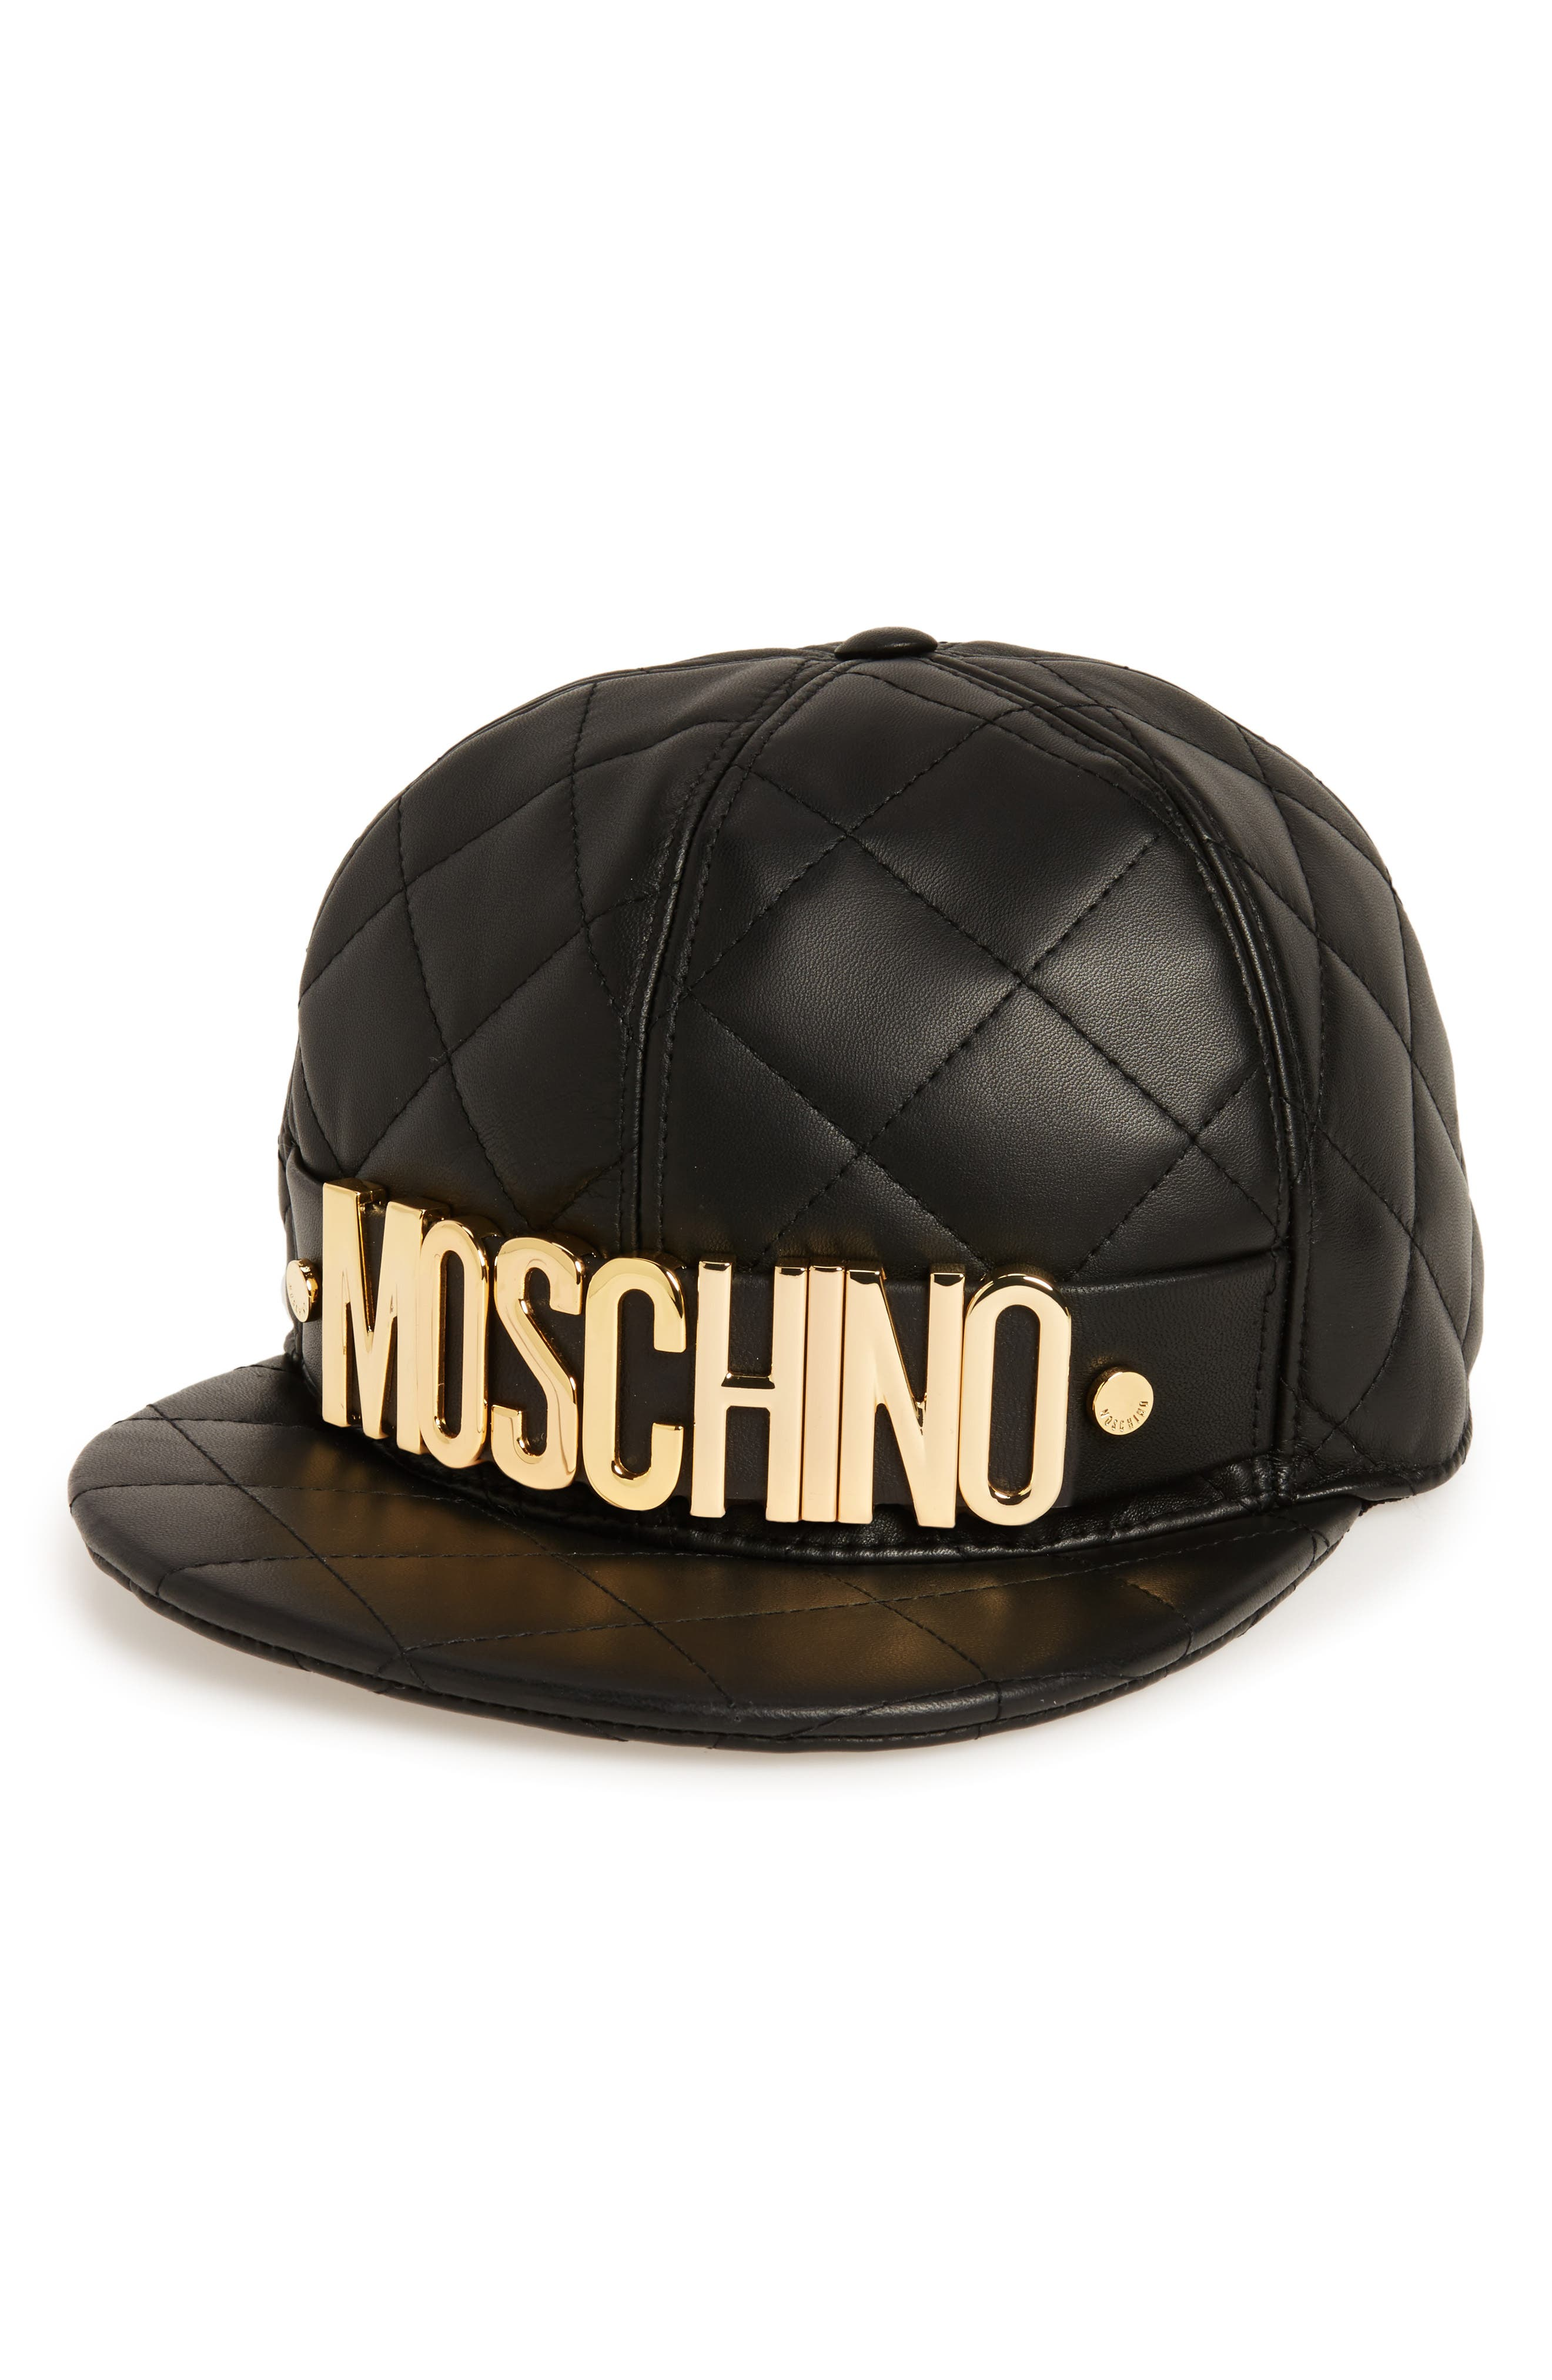 MOSCHINO, Quilted Leather Baseball Cap, Main thumbnail 1, color, BLACK